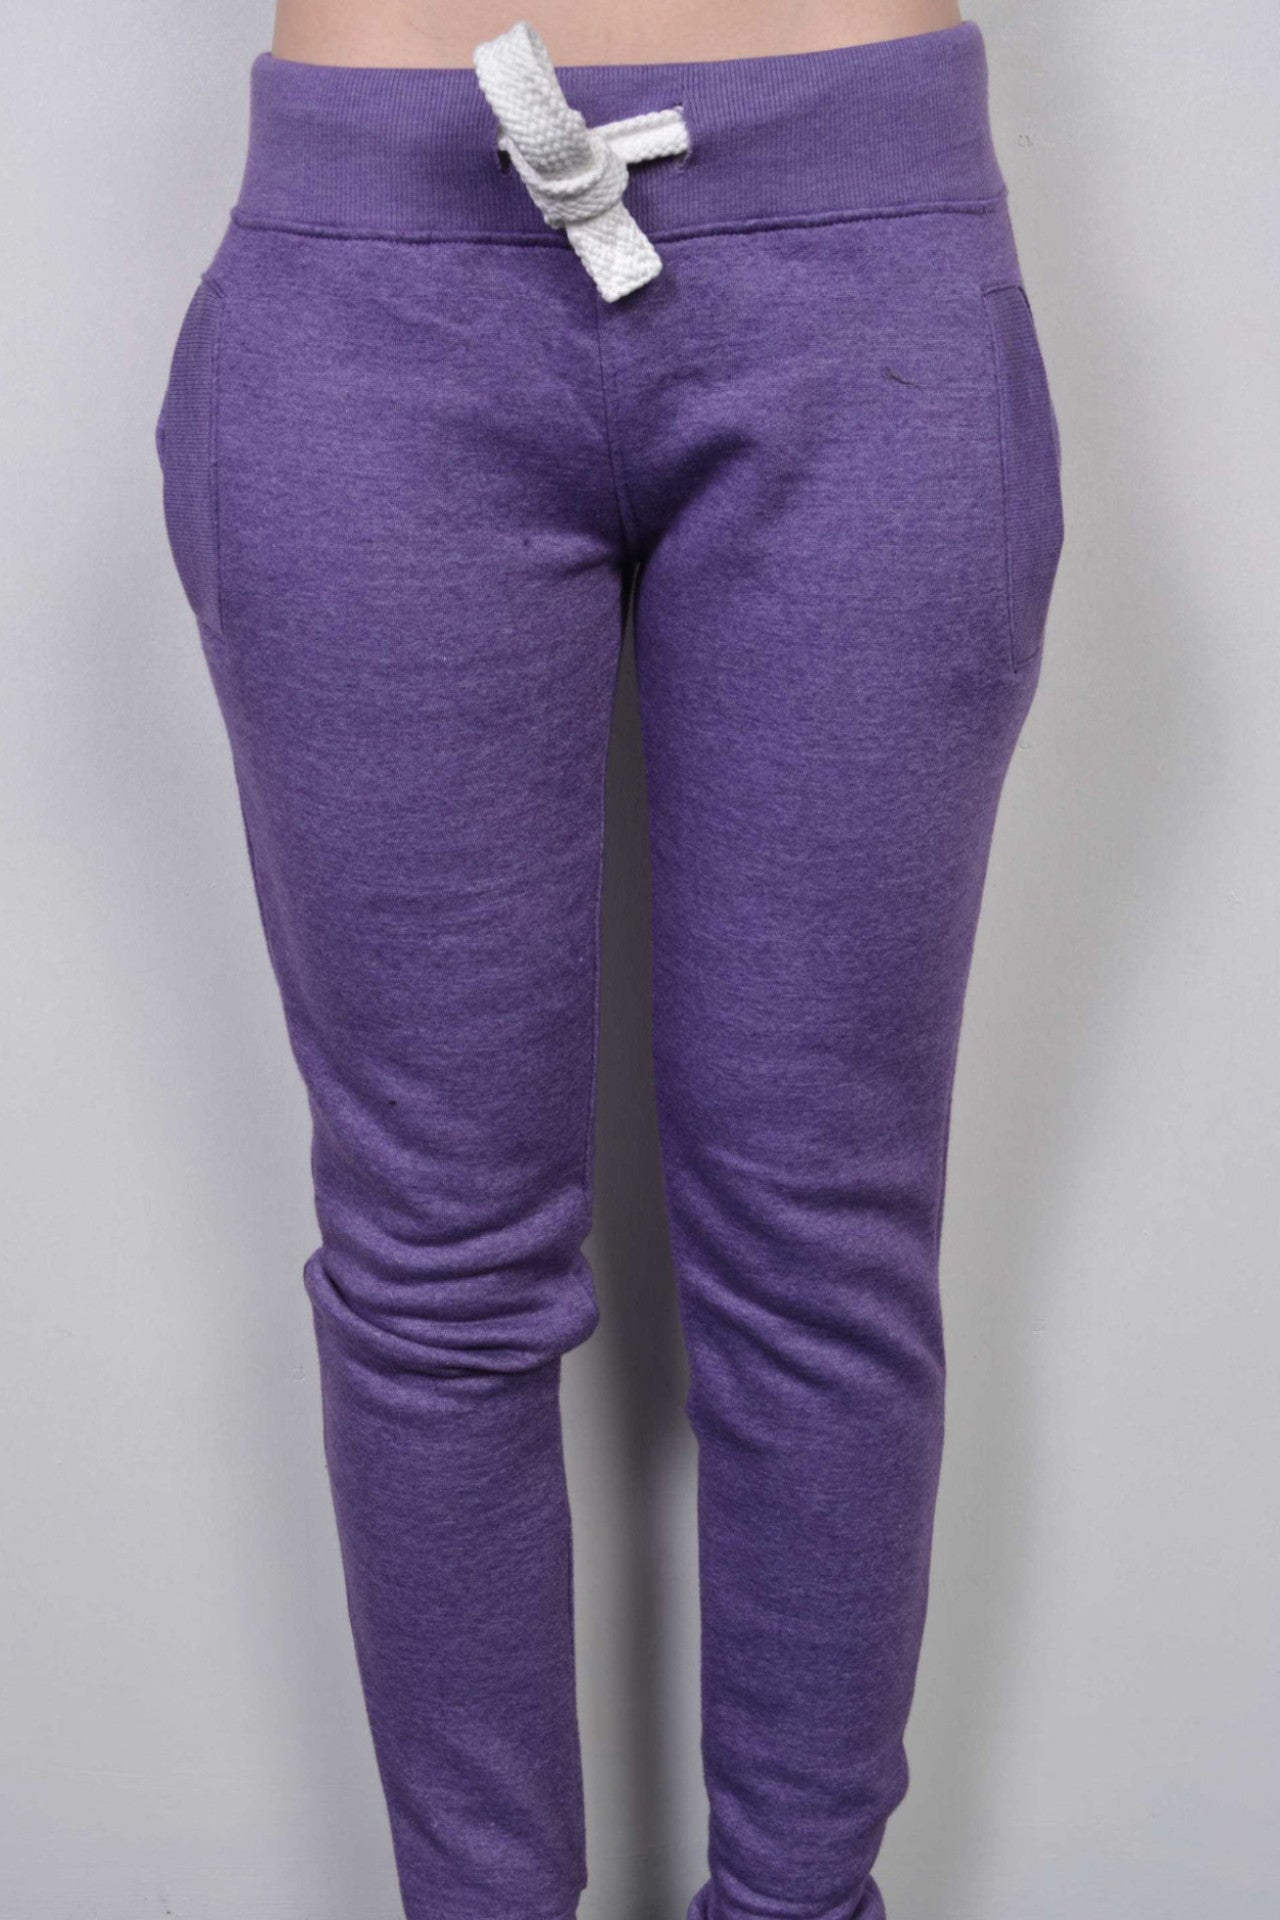 Plain Sweatpants Purple Marl - Miss Tempted  - 1